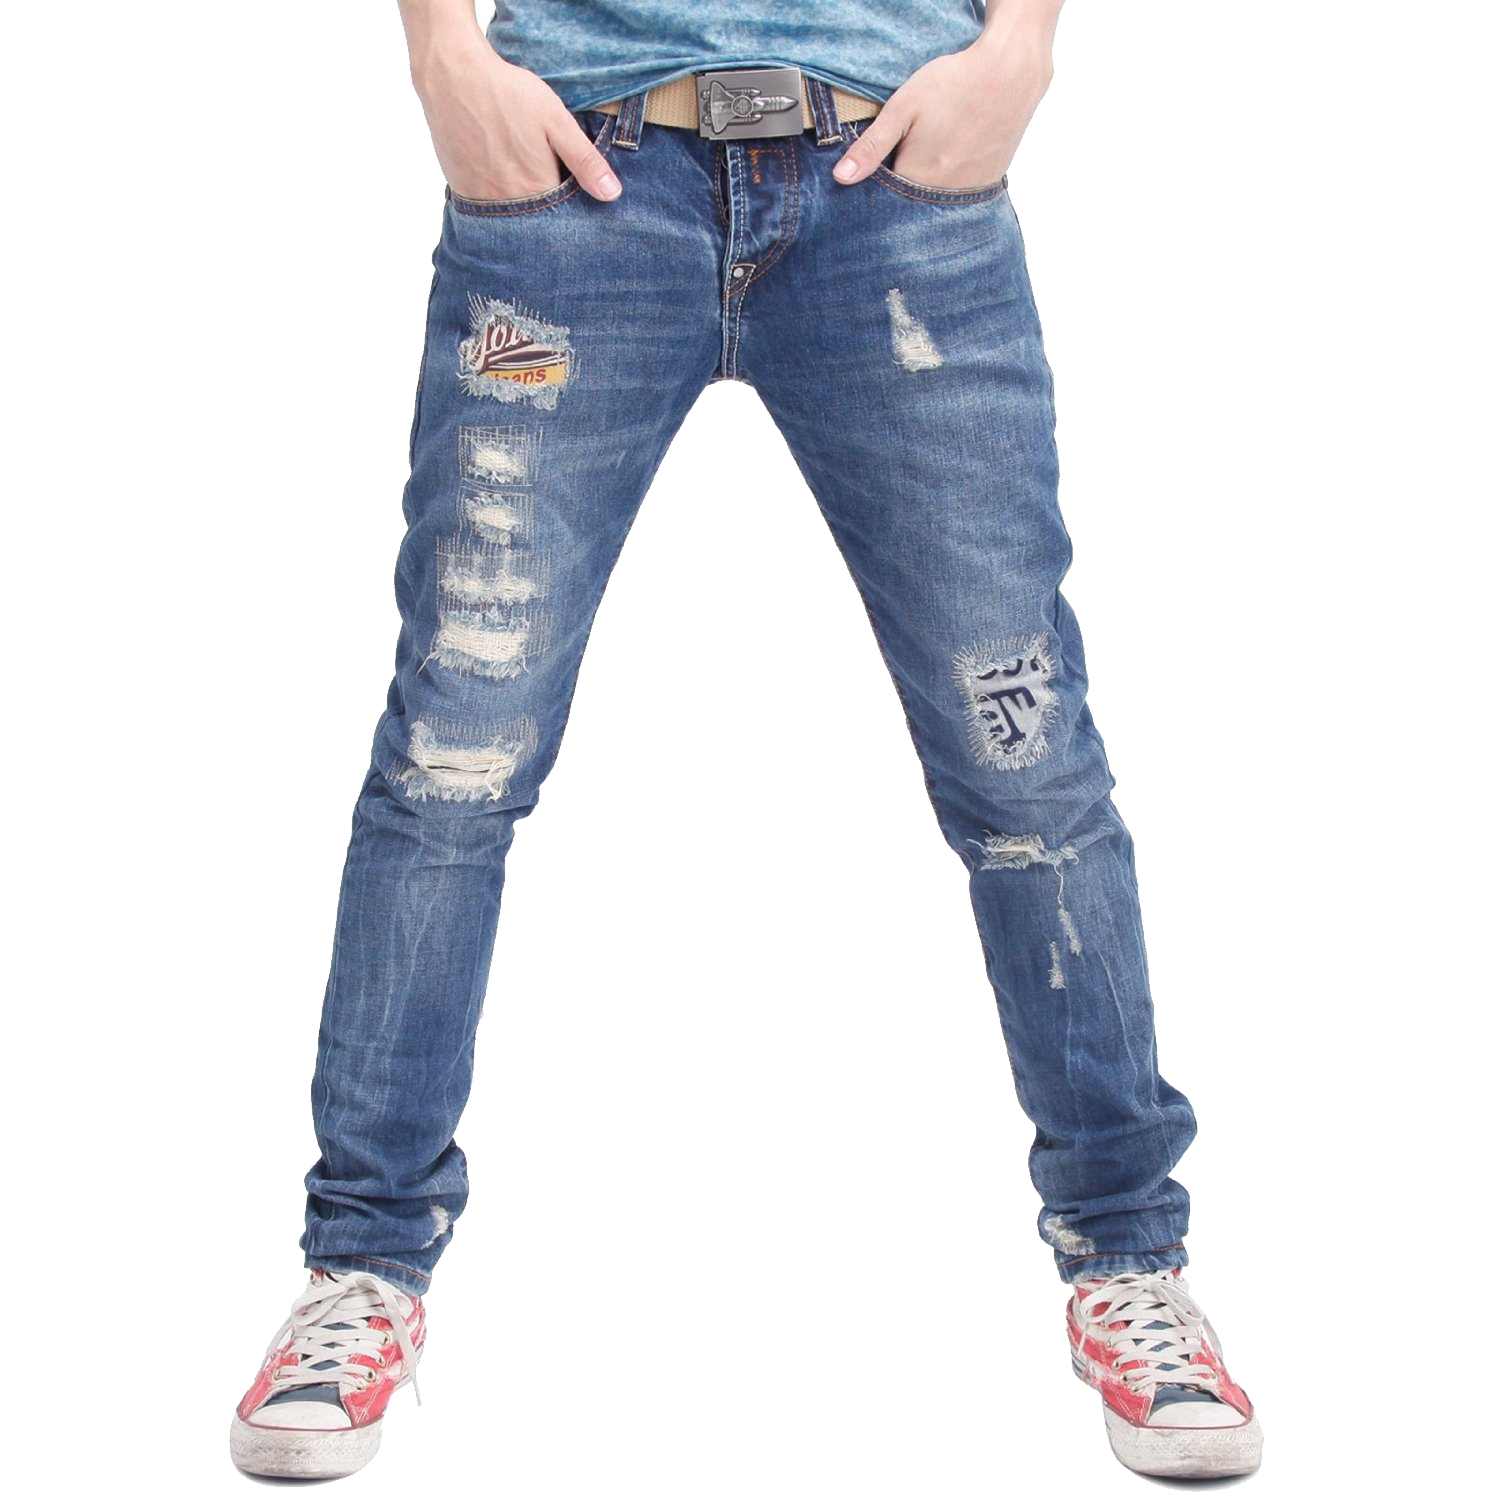 Pile of dirty clothes png. Man with blue jeans